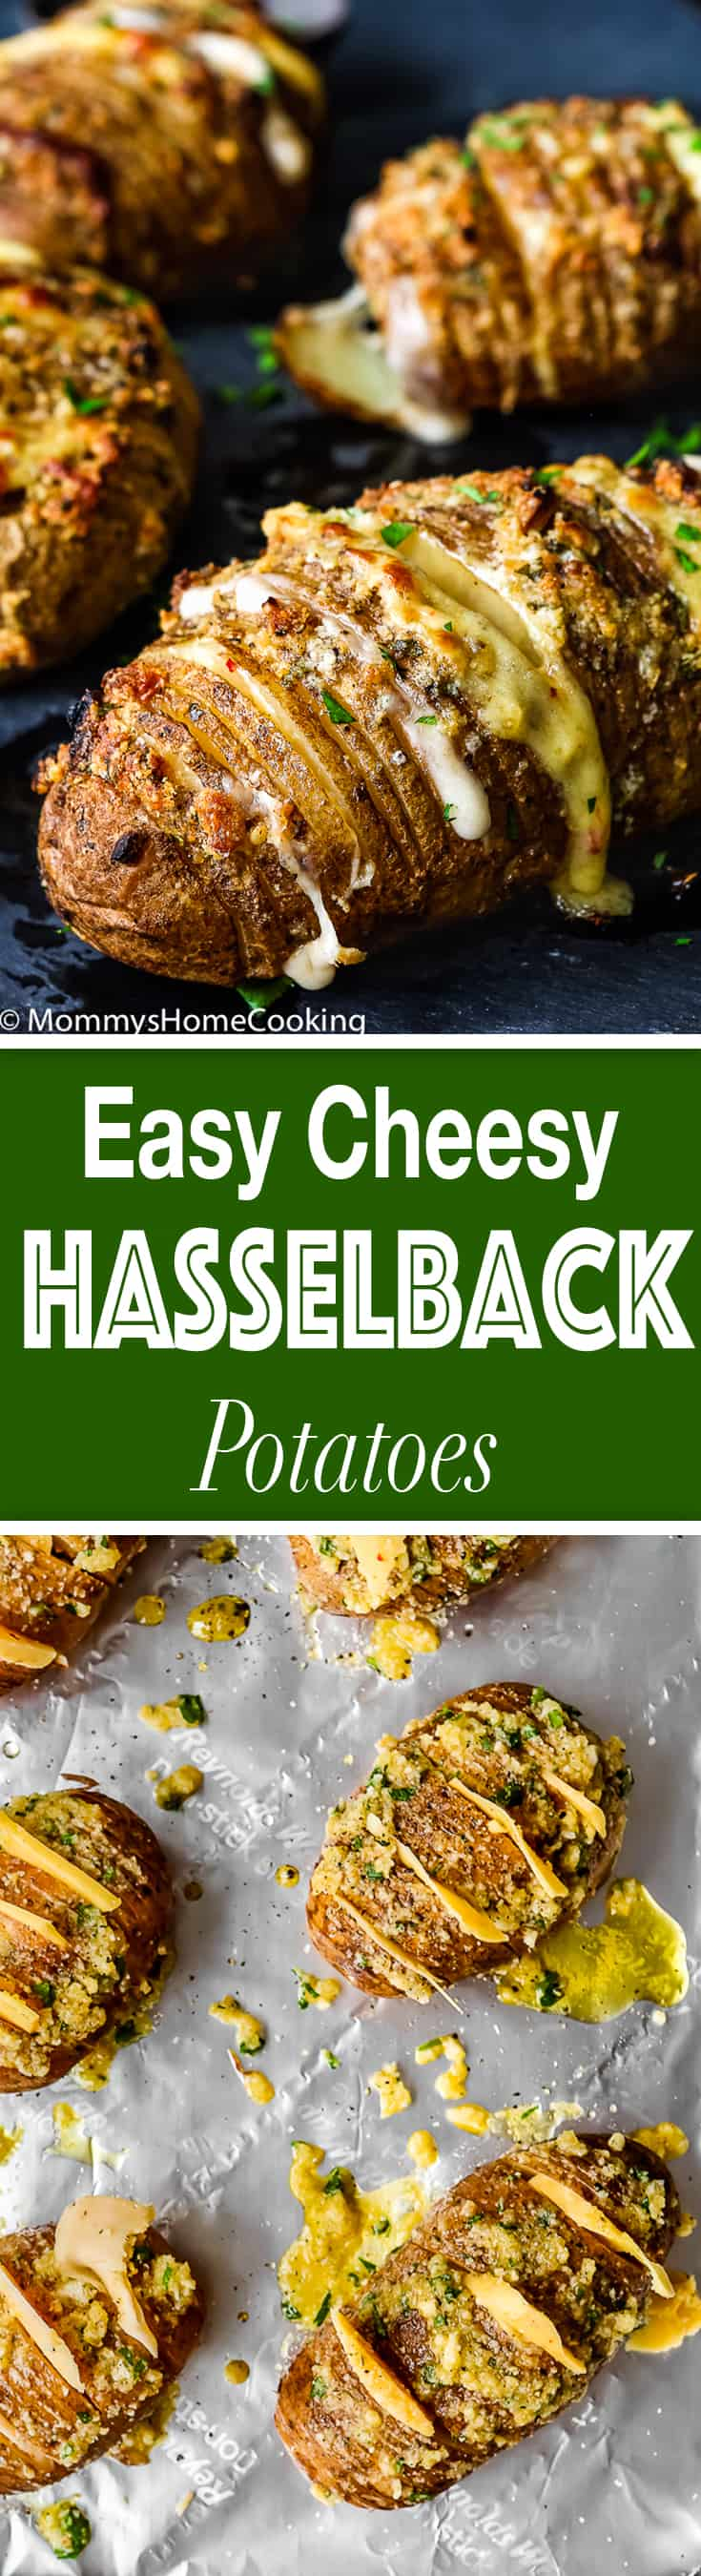 Easy Cheesy Garlic Hasselback Potatoes | Mommy's Home Cooking